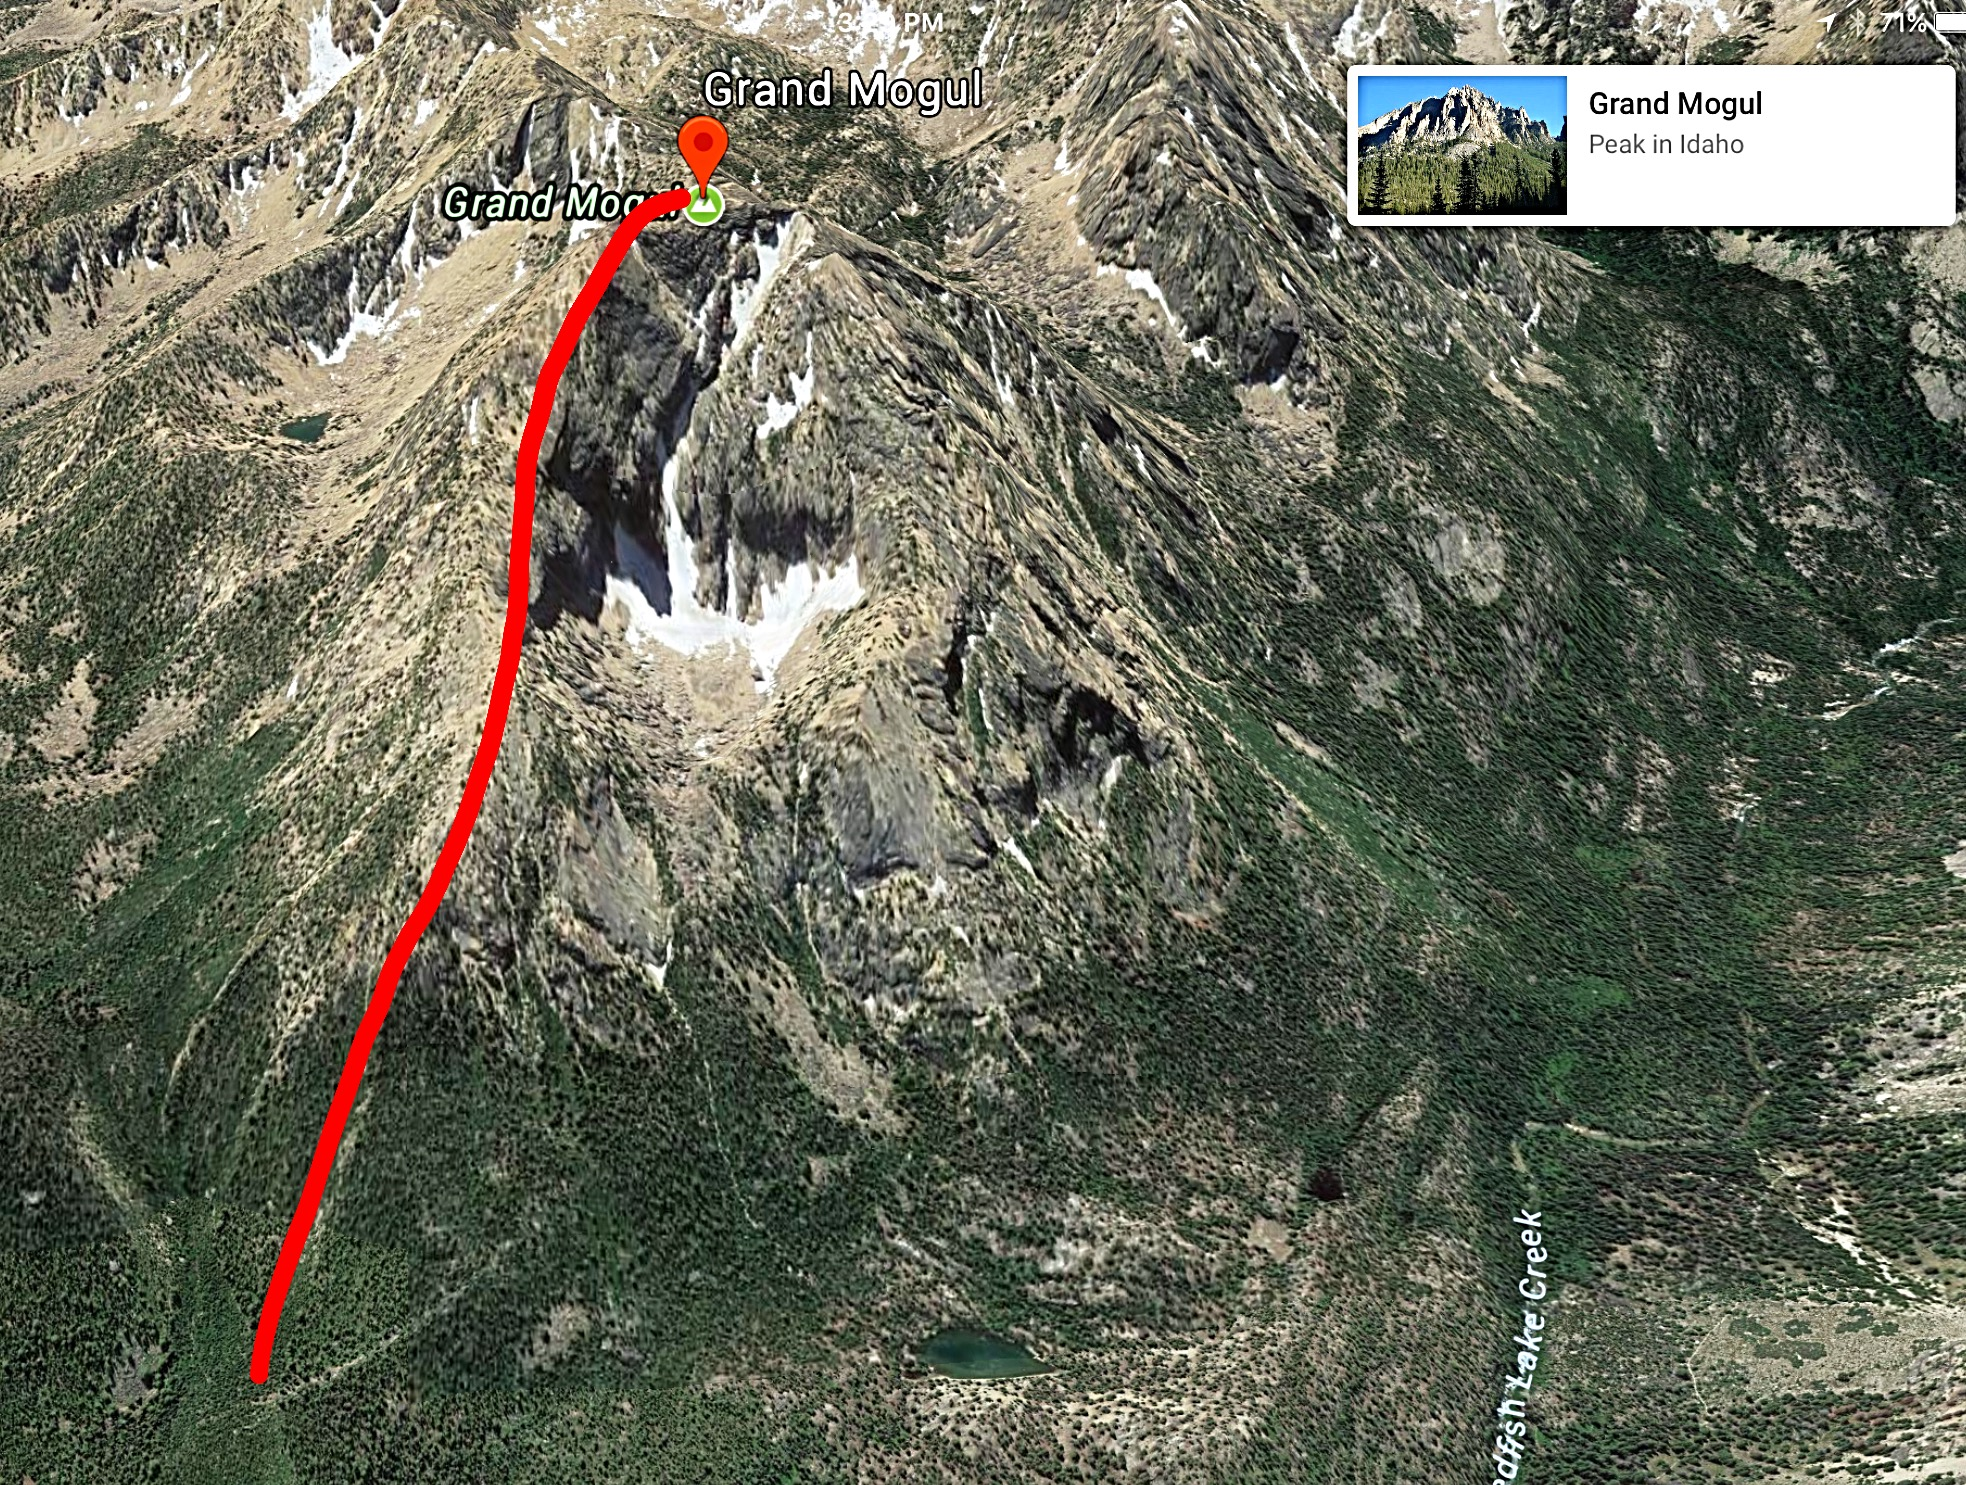 A Google Earth image showing the northeast ridge route.